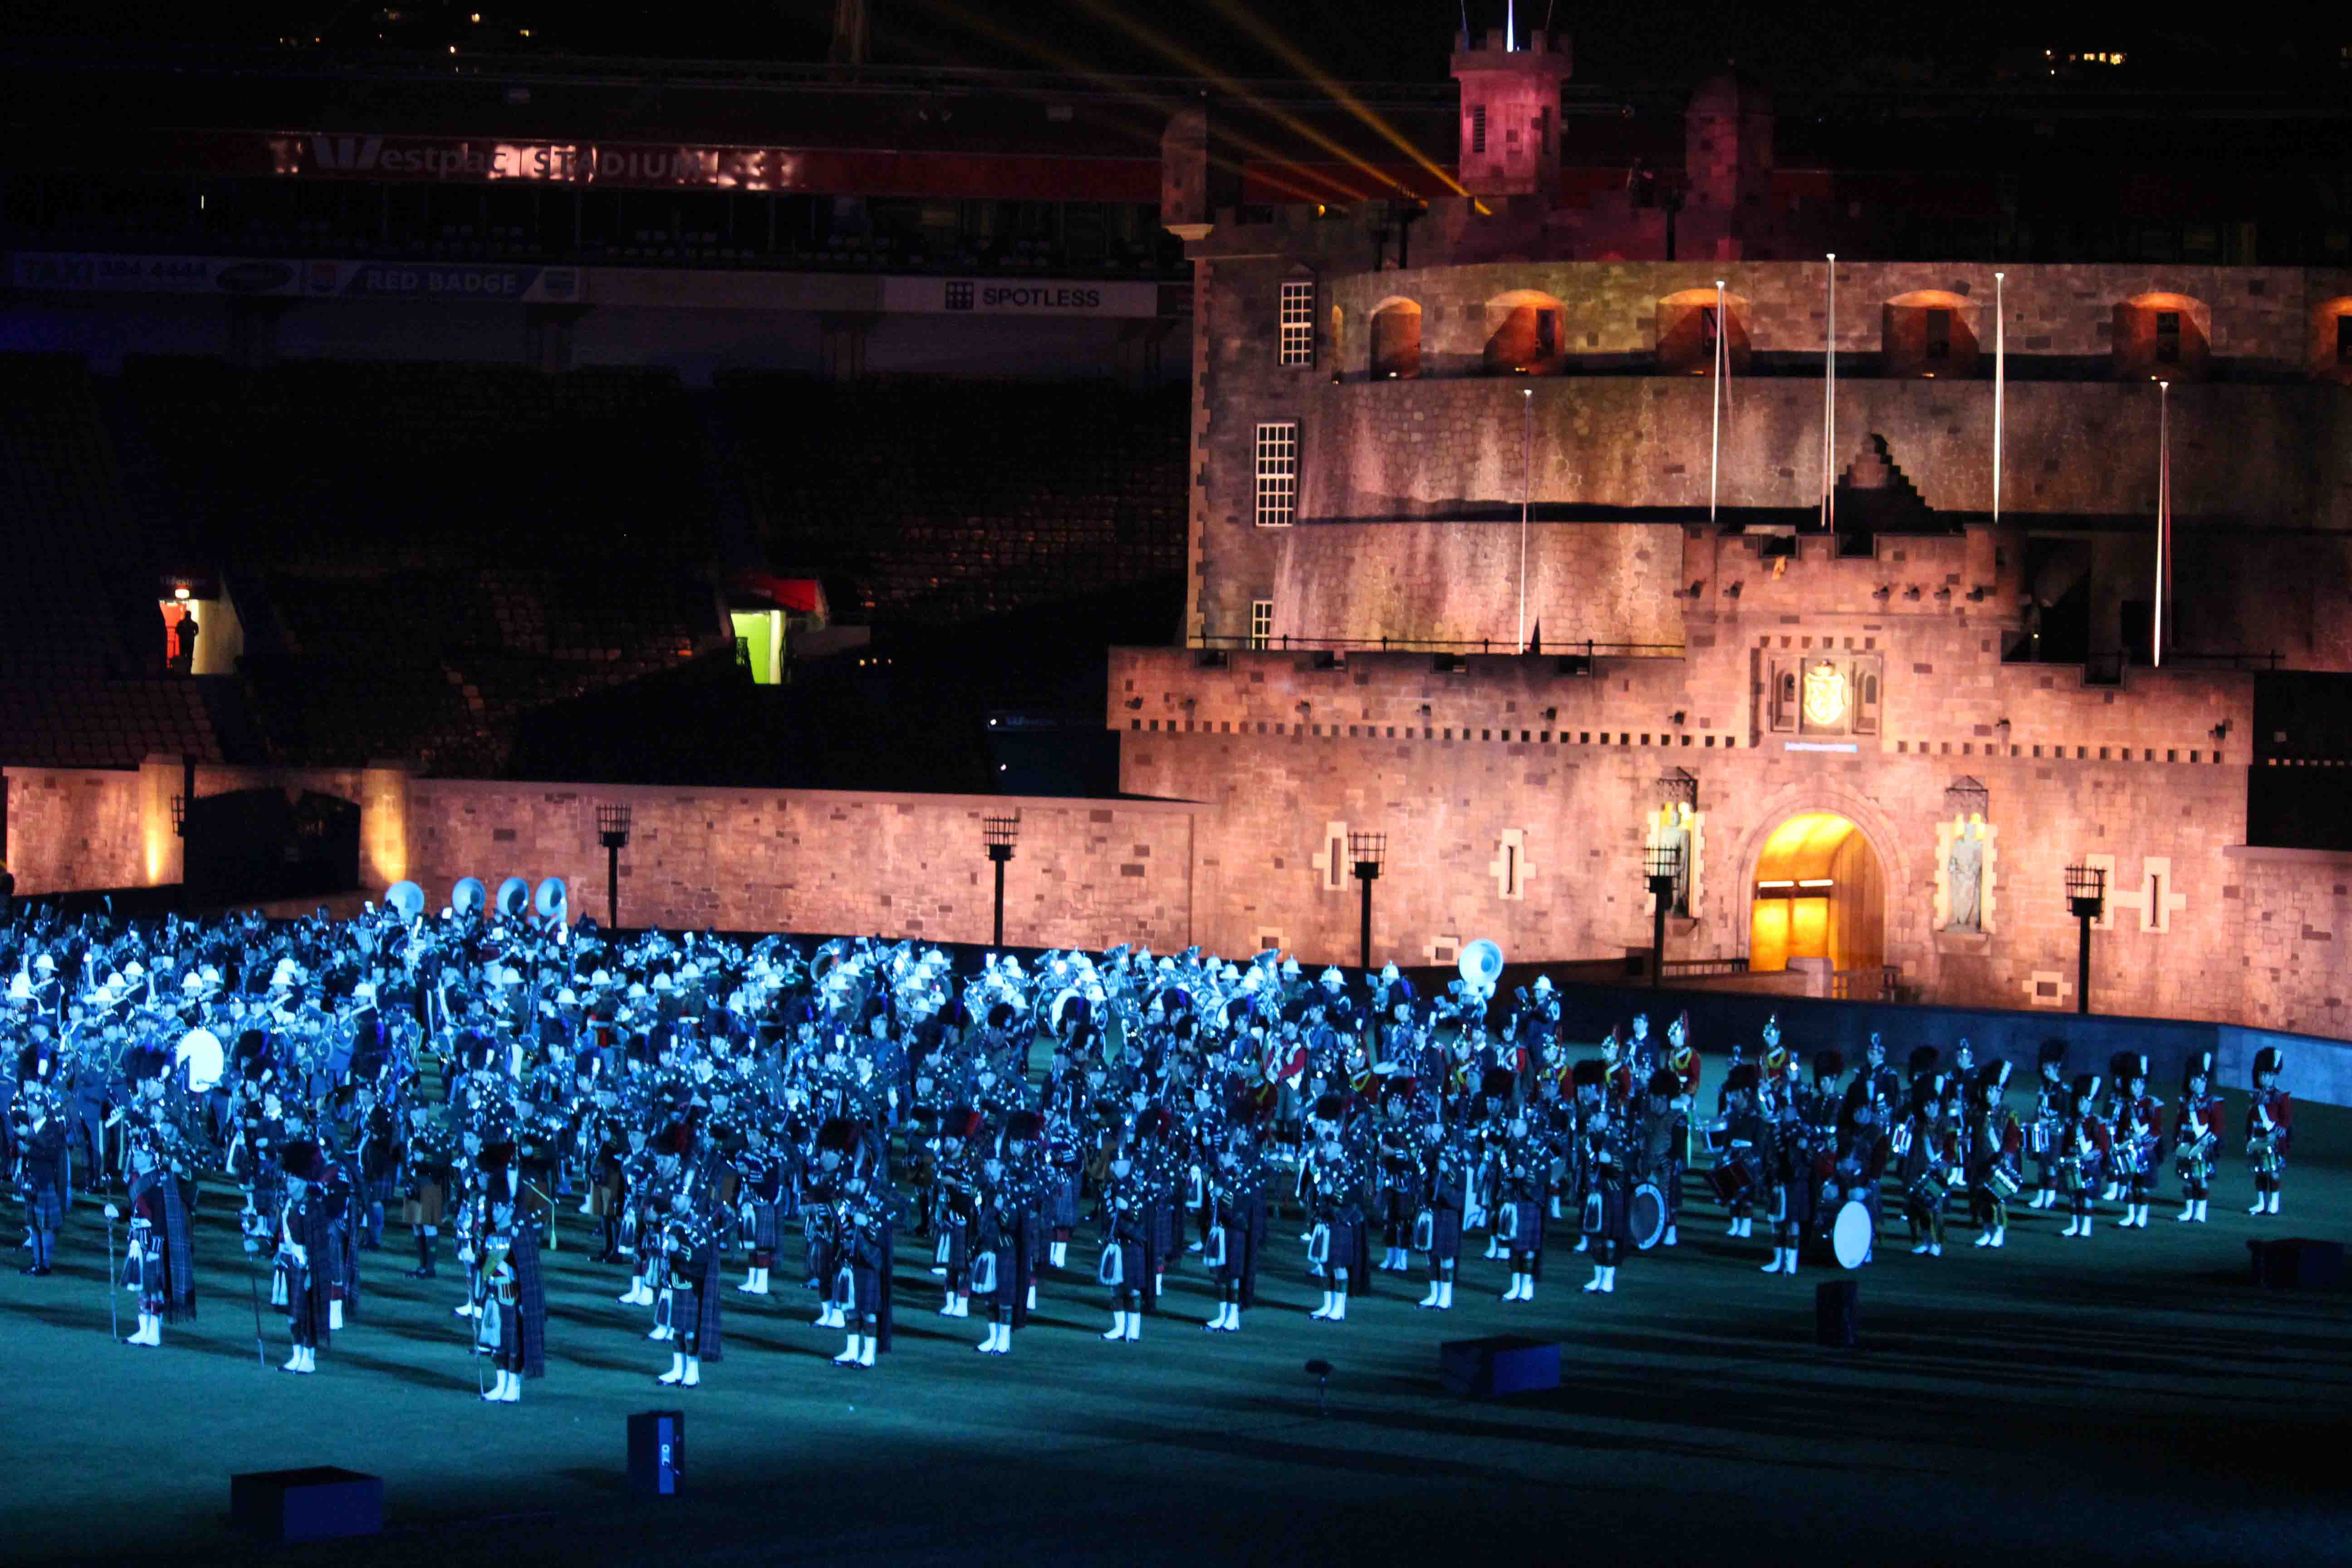 Saint kentigern the royal edinburgh military tattoo 2016 for Royal edinburgh military tattoo